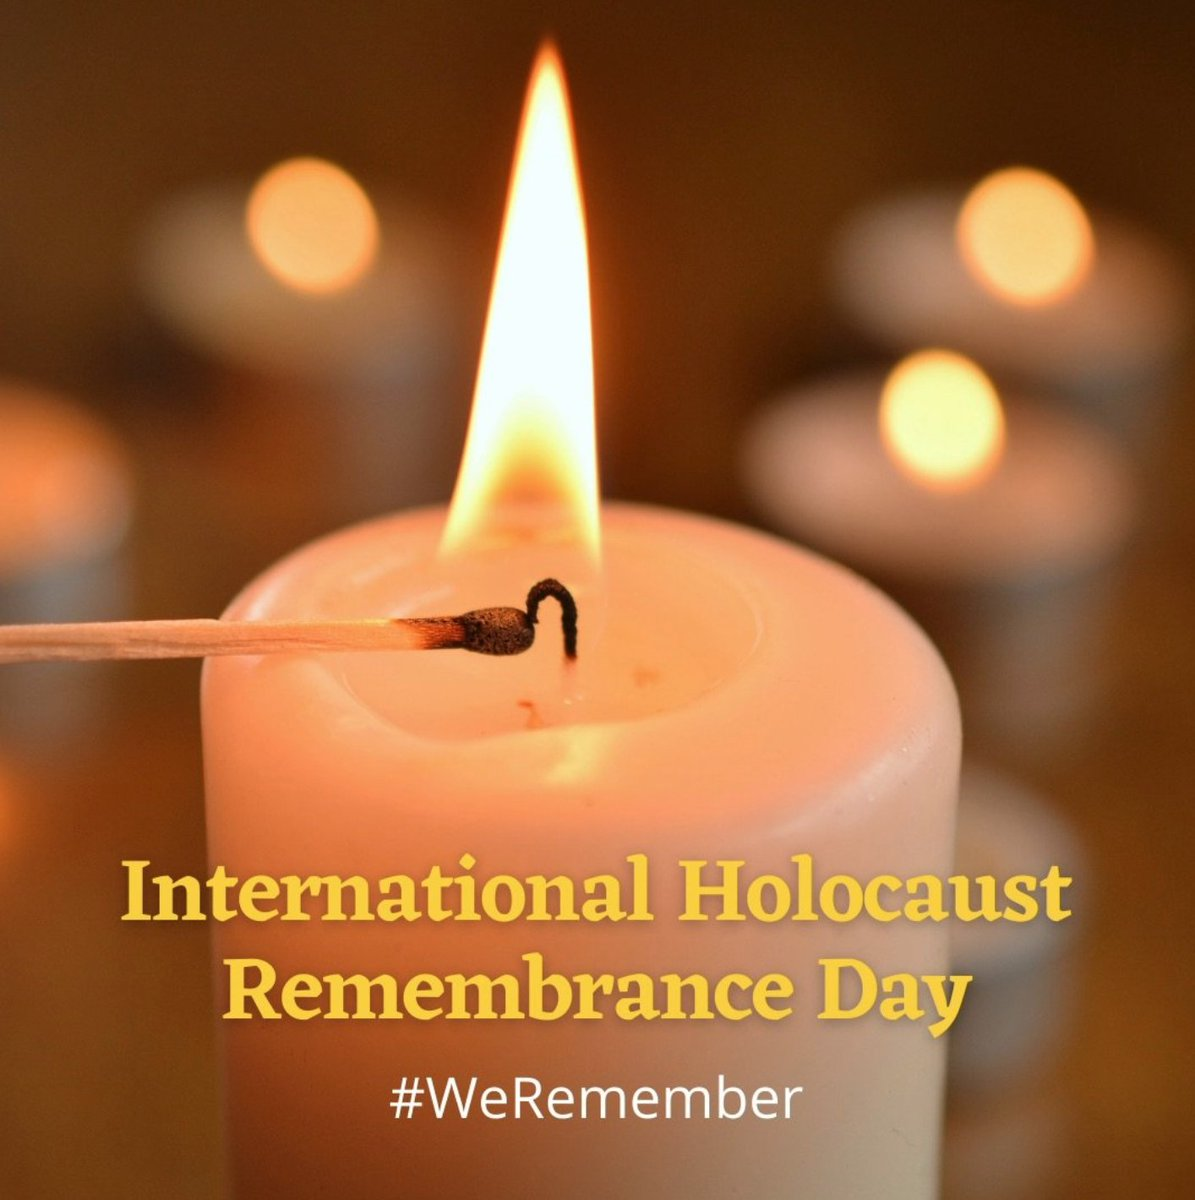 Today we remember the 6 million Jewish lives lost and the millions of others who were murdered by the Nazi regime. We must continue to share the stories of Holocaust victims and survivors. #NeverAgain #HolocaustRemembrance